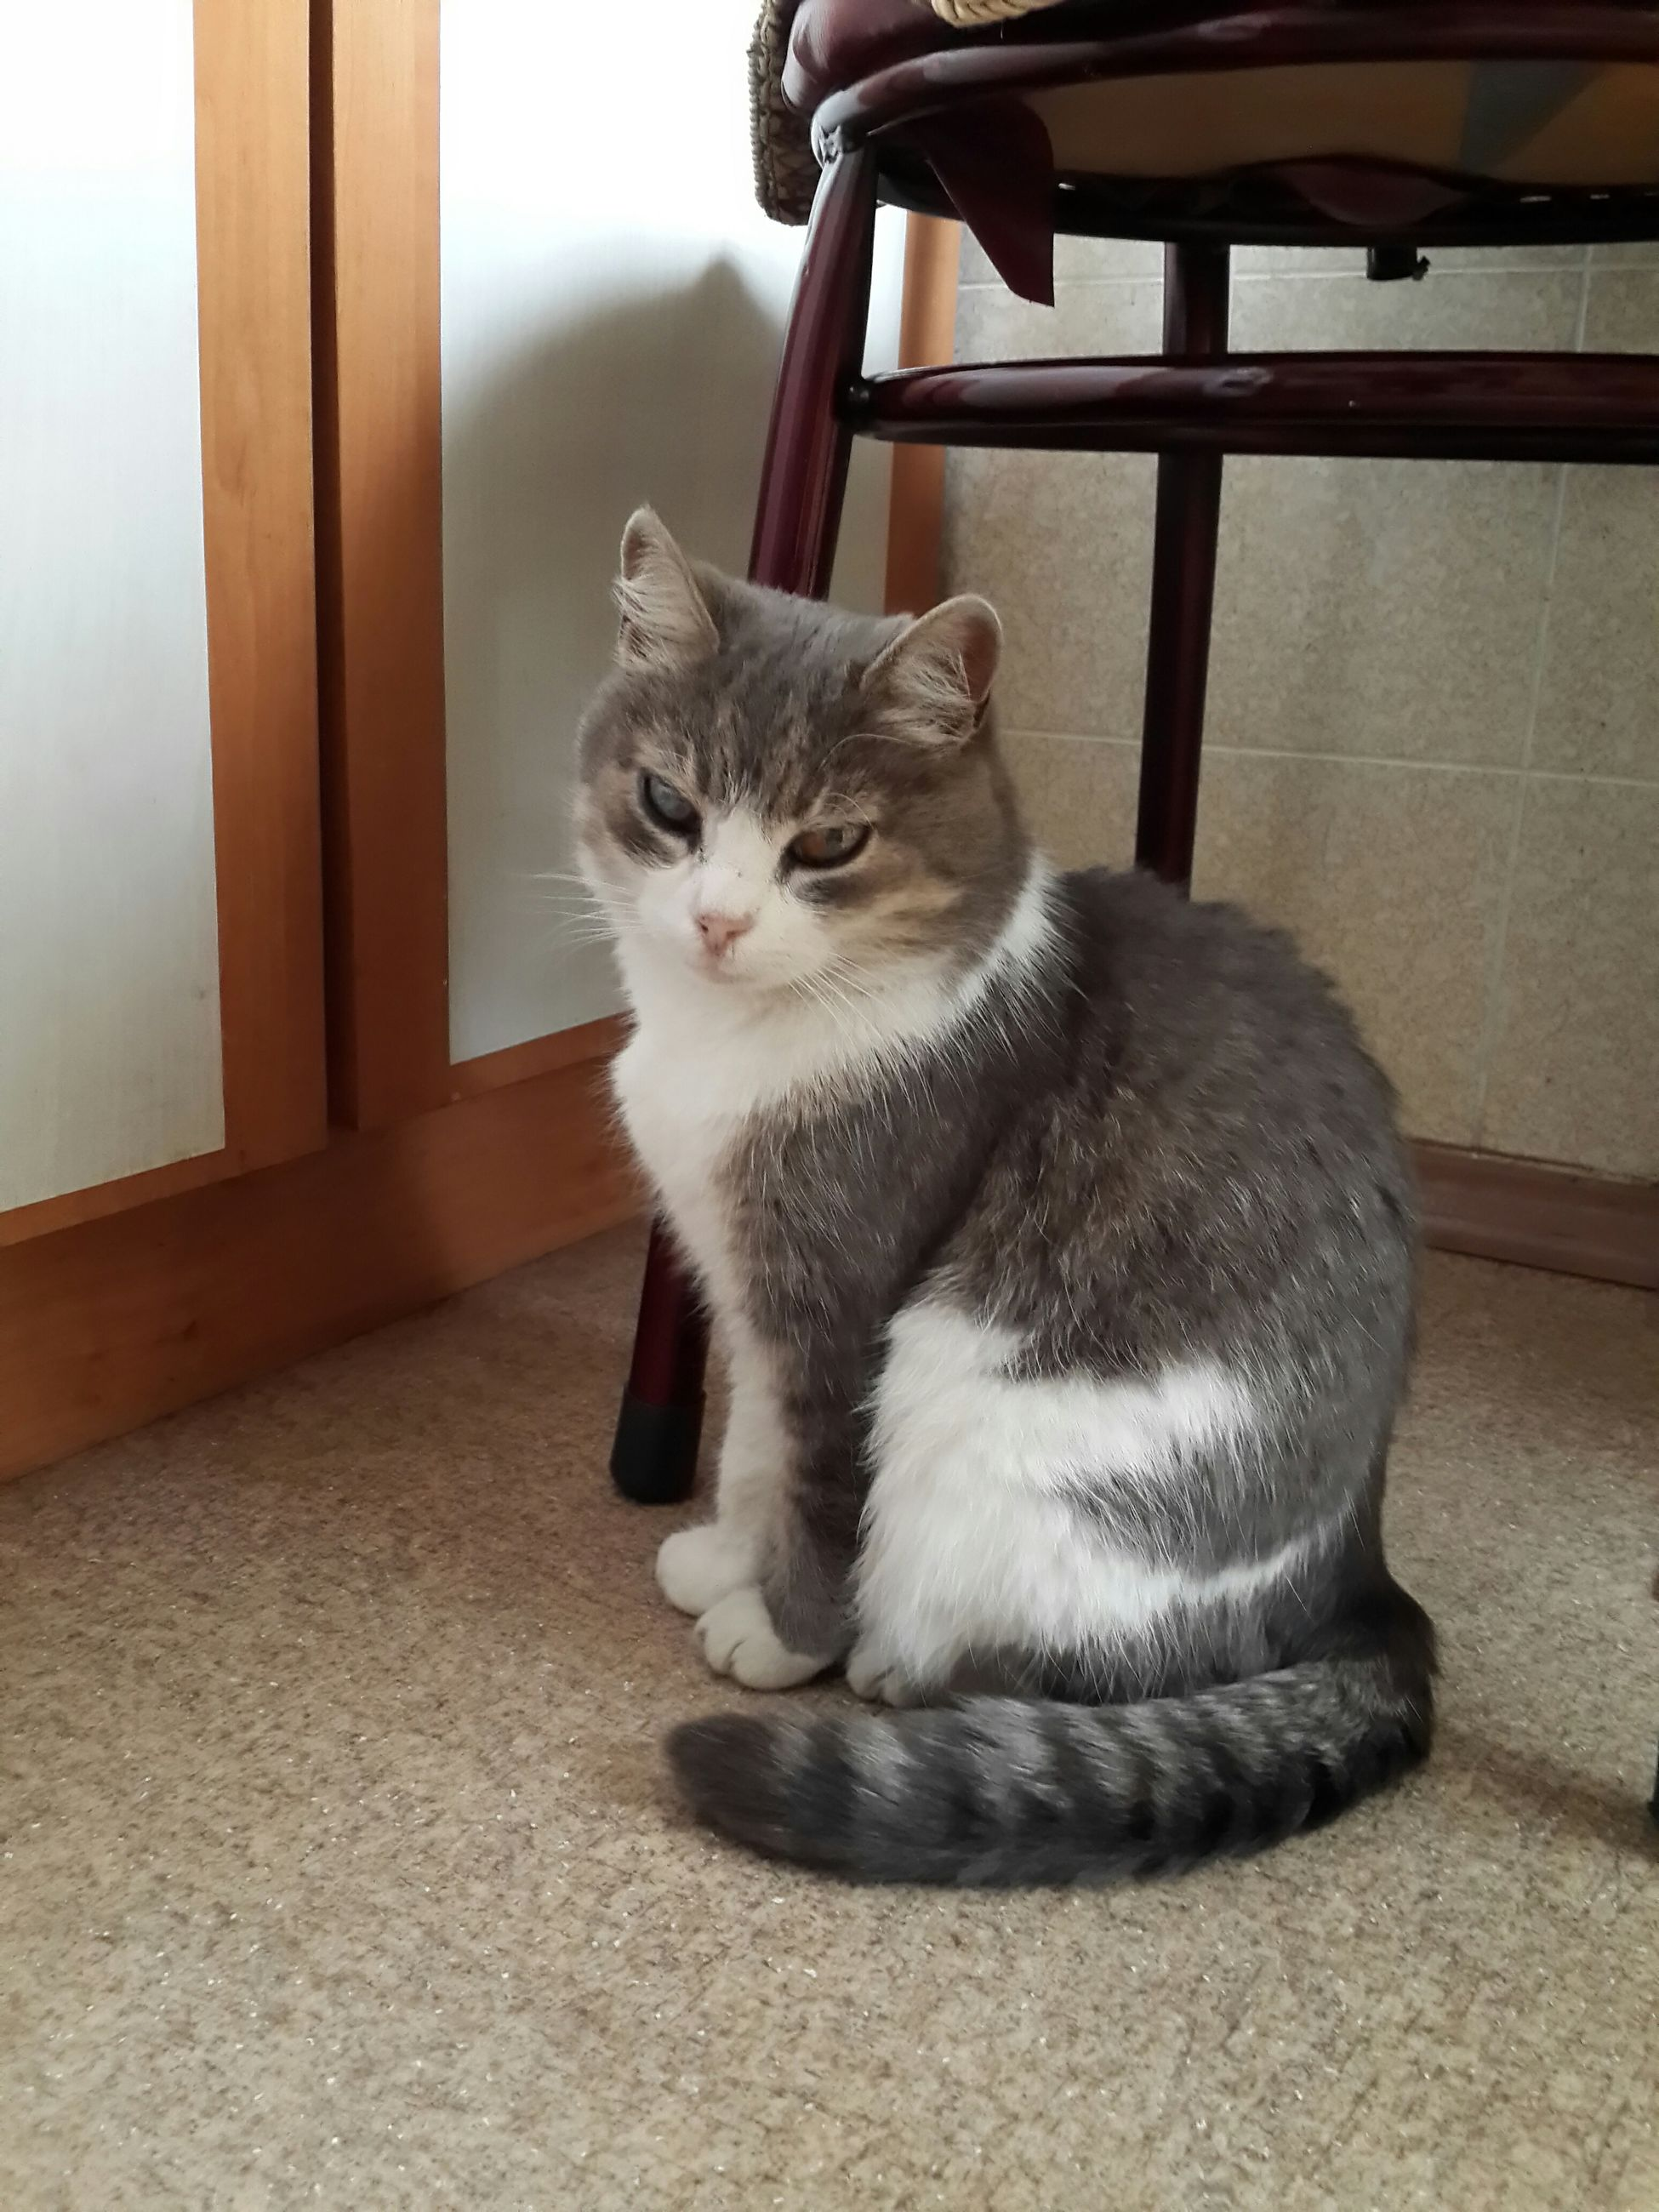 domestic cat, cat, pets, domestic animals, one animal, feline, mammal, animal themes, indoors, whisker, portrait, looking at camera, relaxation, sitting, home interior, no people, staring, close-up, alertness, day